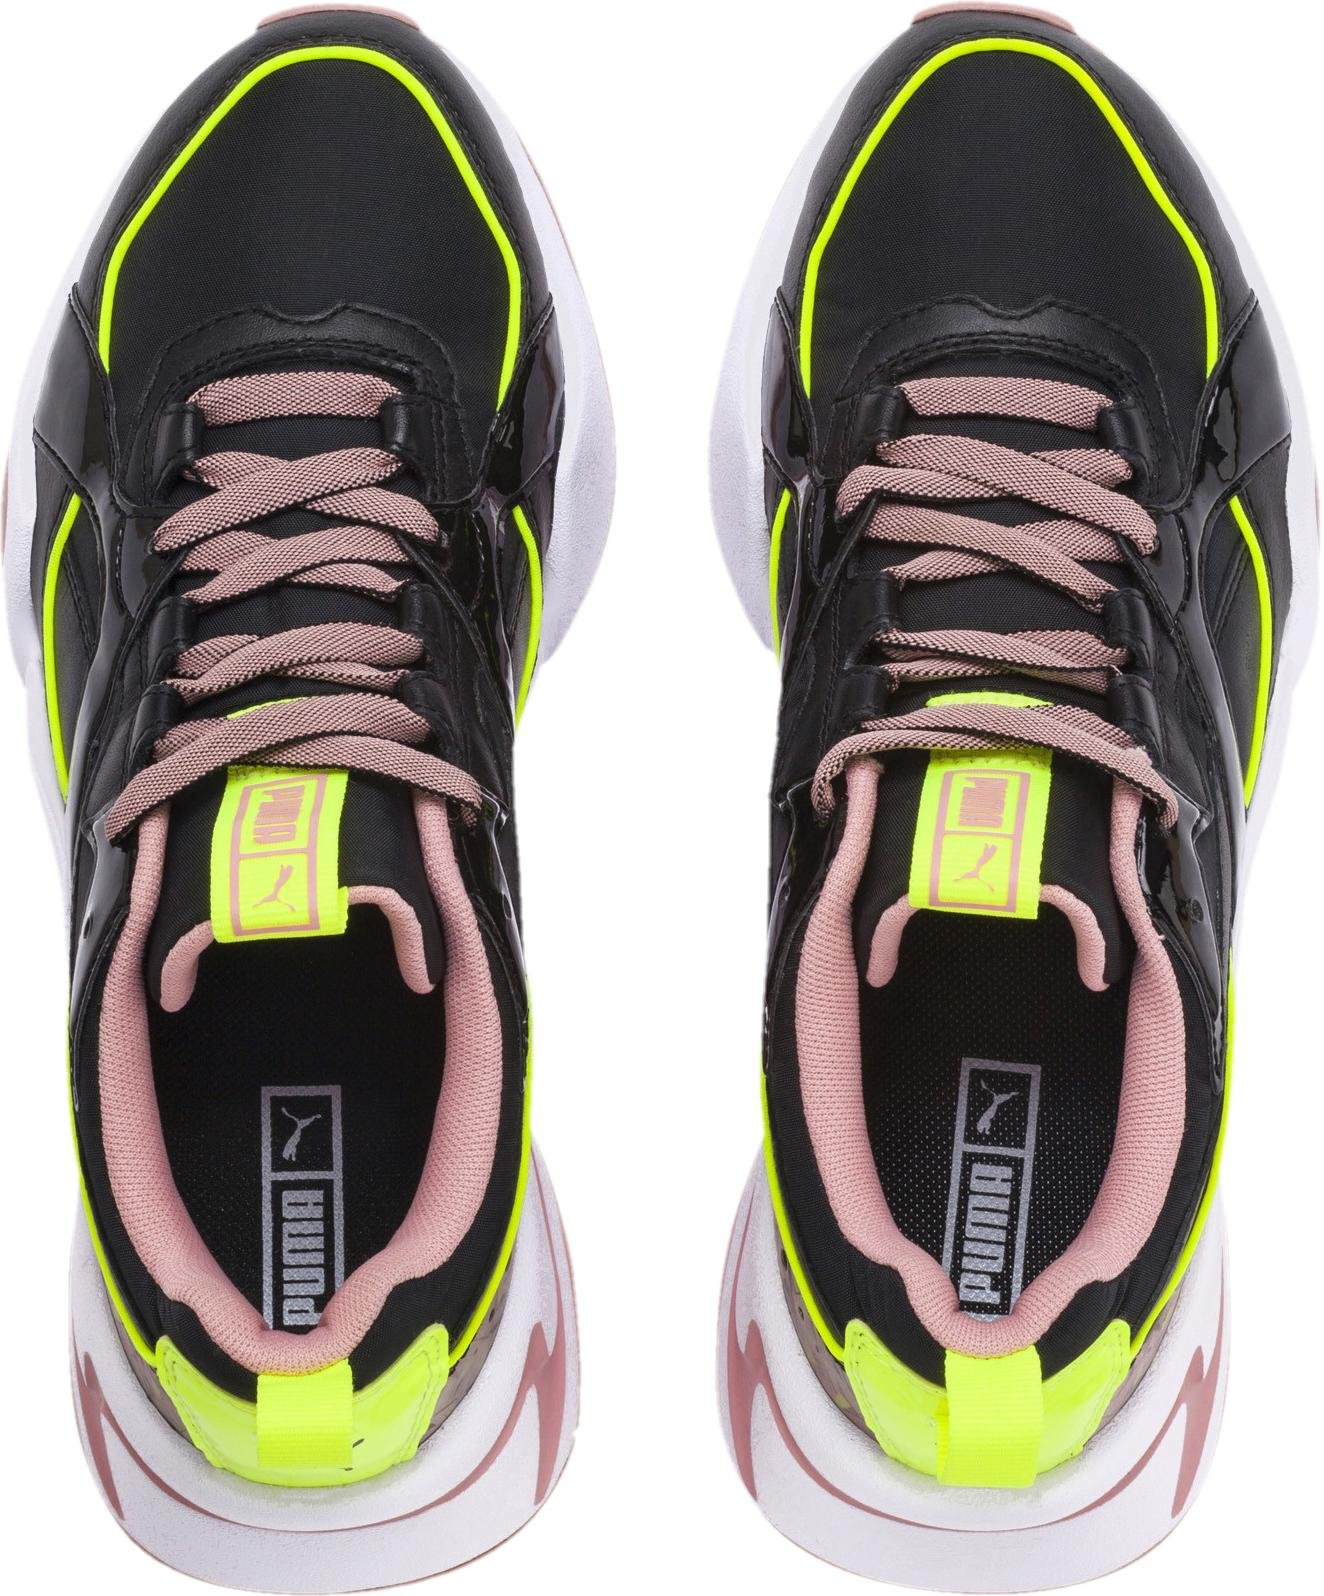 Shoes Puma Nova 2 Shift Wn s